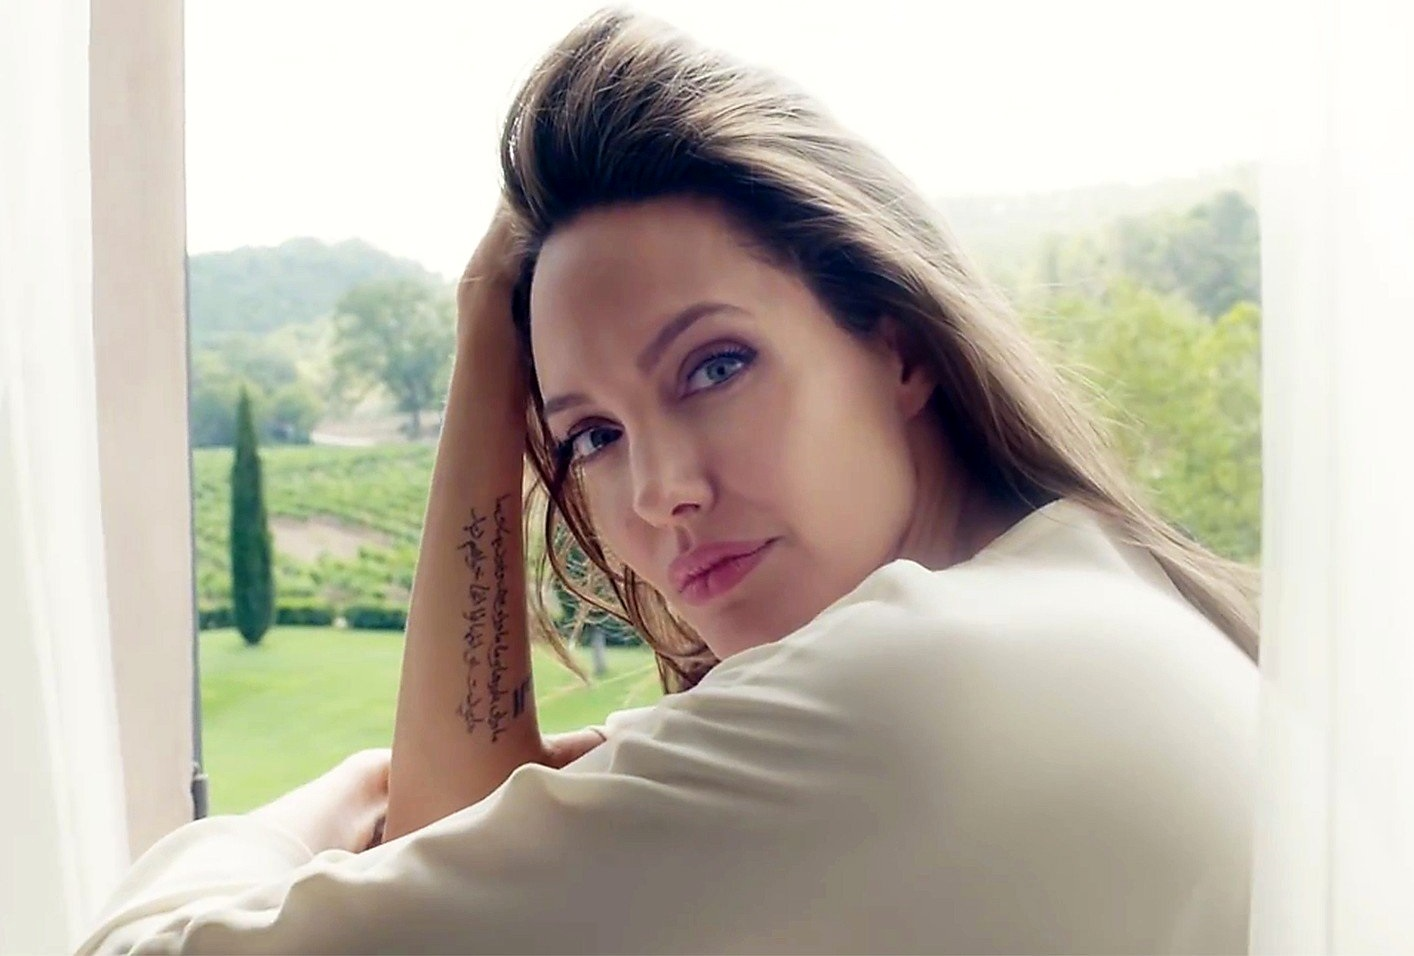 Angelina Jolie in clip stills of 'Notes of a Woman', the promotional film for Guerlain's new fragrance 'MonGuerlain'. Guerlain Parfumeur, the French beauty brand since 1828, has announced that Angelina Jolie is the icon of its new fragrance for women, 'MonGuerlain'. The actress has announced she will donate her incomes from the campaign to several charities., Image: 322876020, License: Rights-managed, Restrictions: EDITORIAL USE ONLY, Model Release: no, Credit line: Profimedia, Balawa Pics